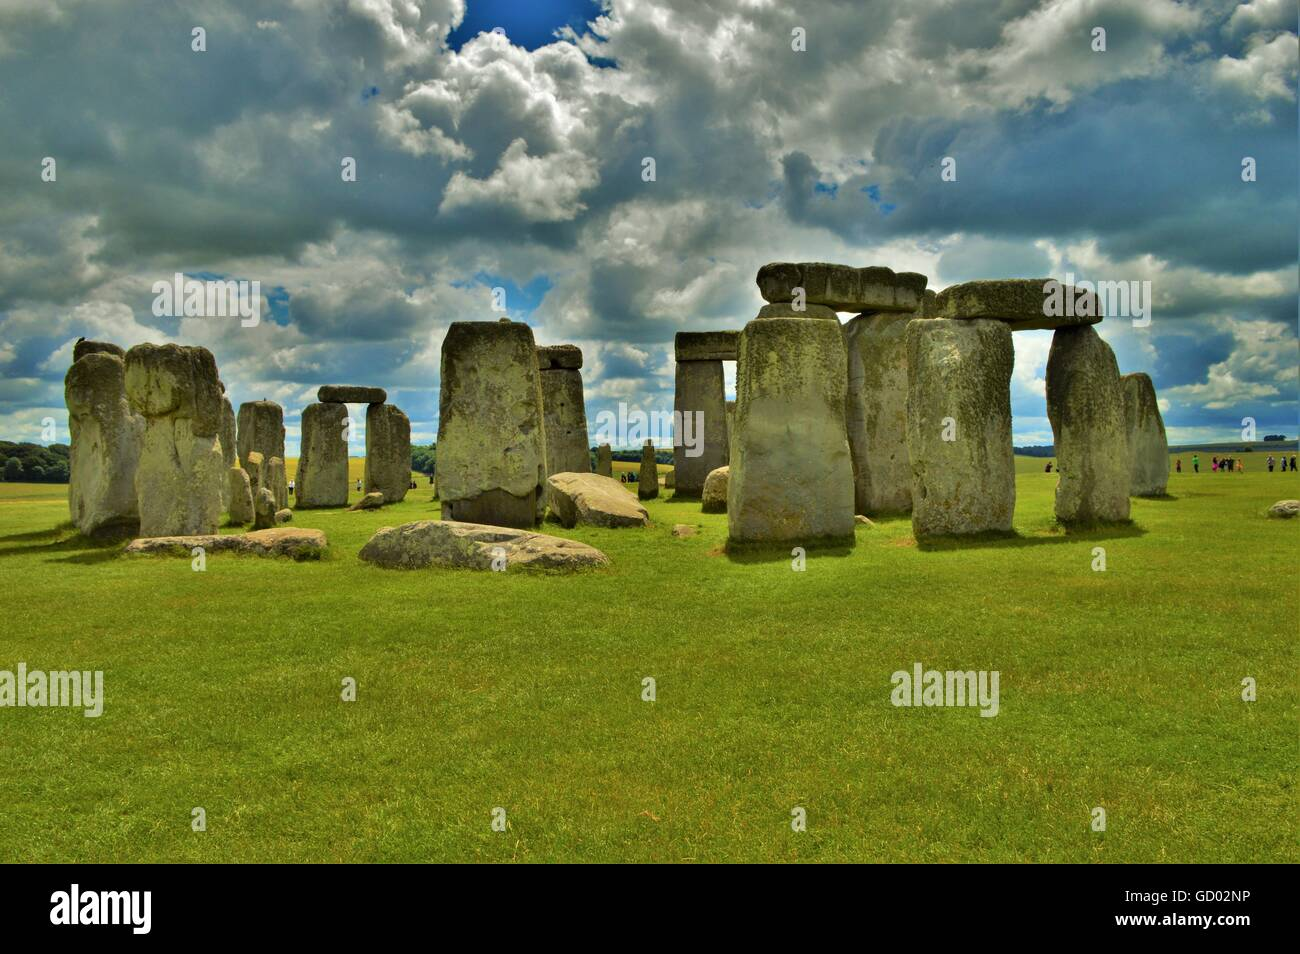 Stonehenge Against Clouds - Stock Image